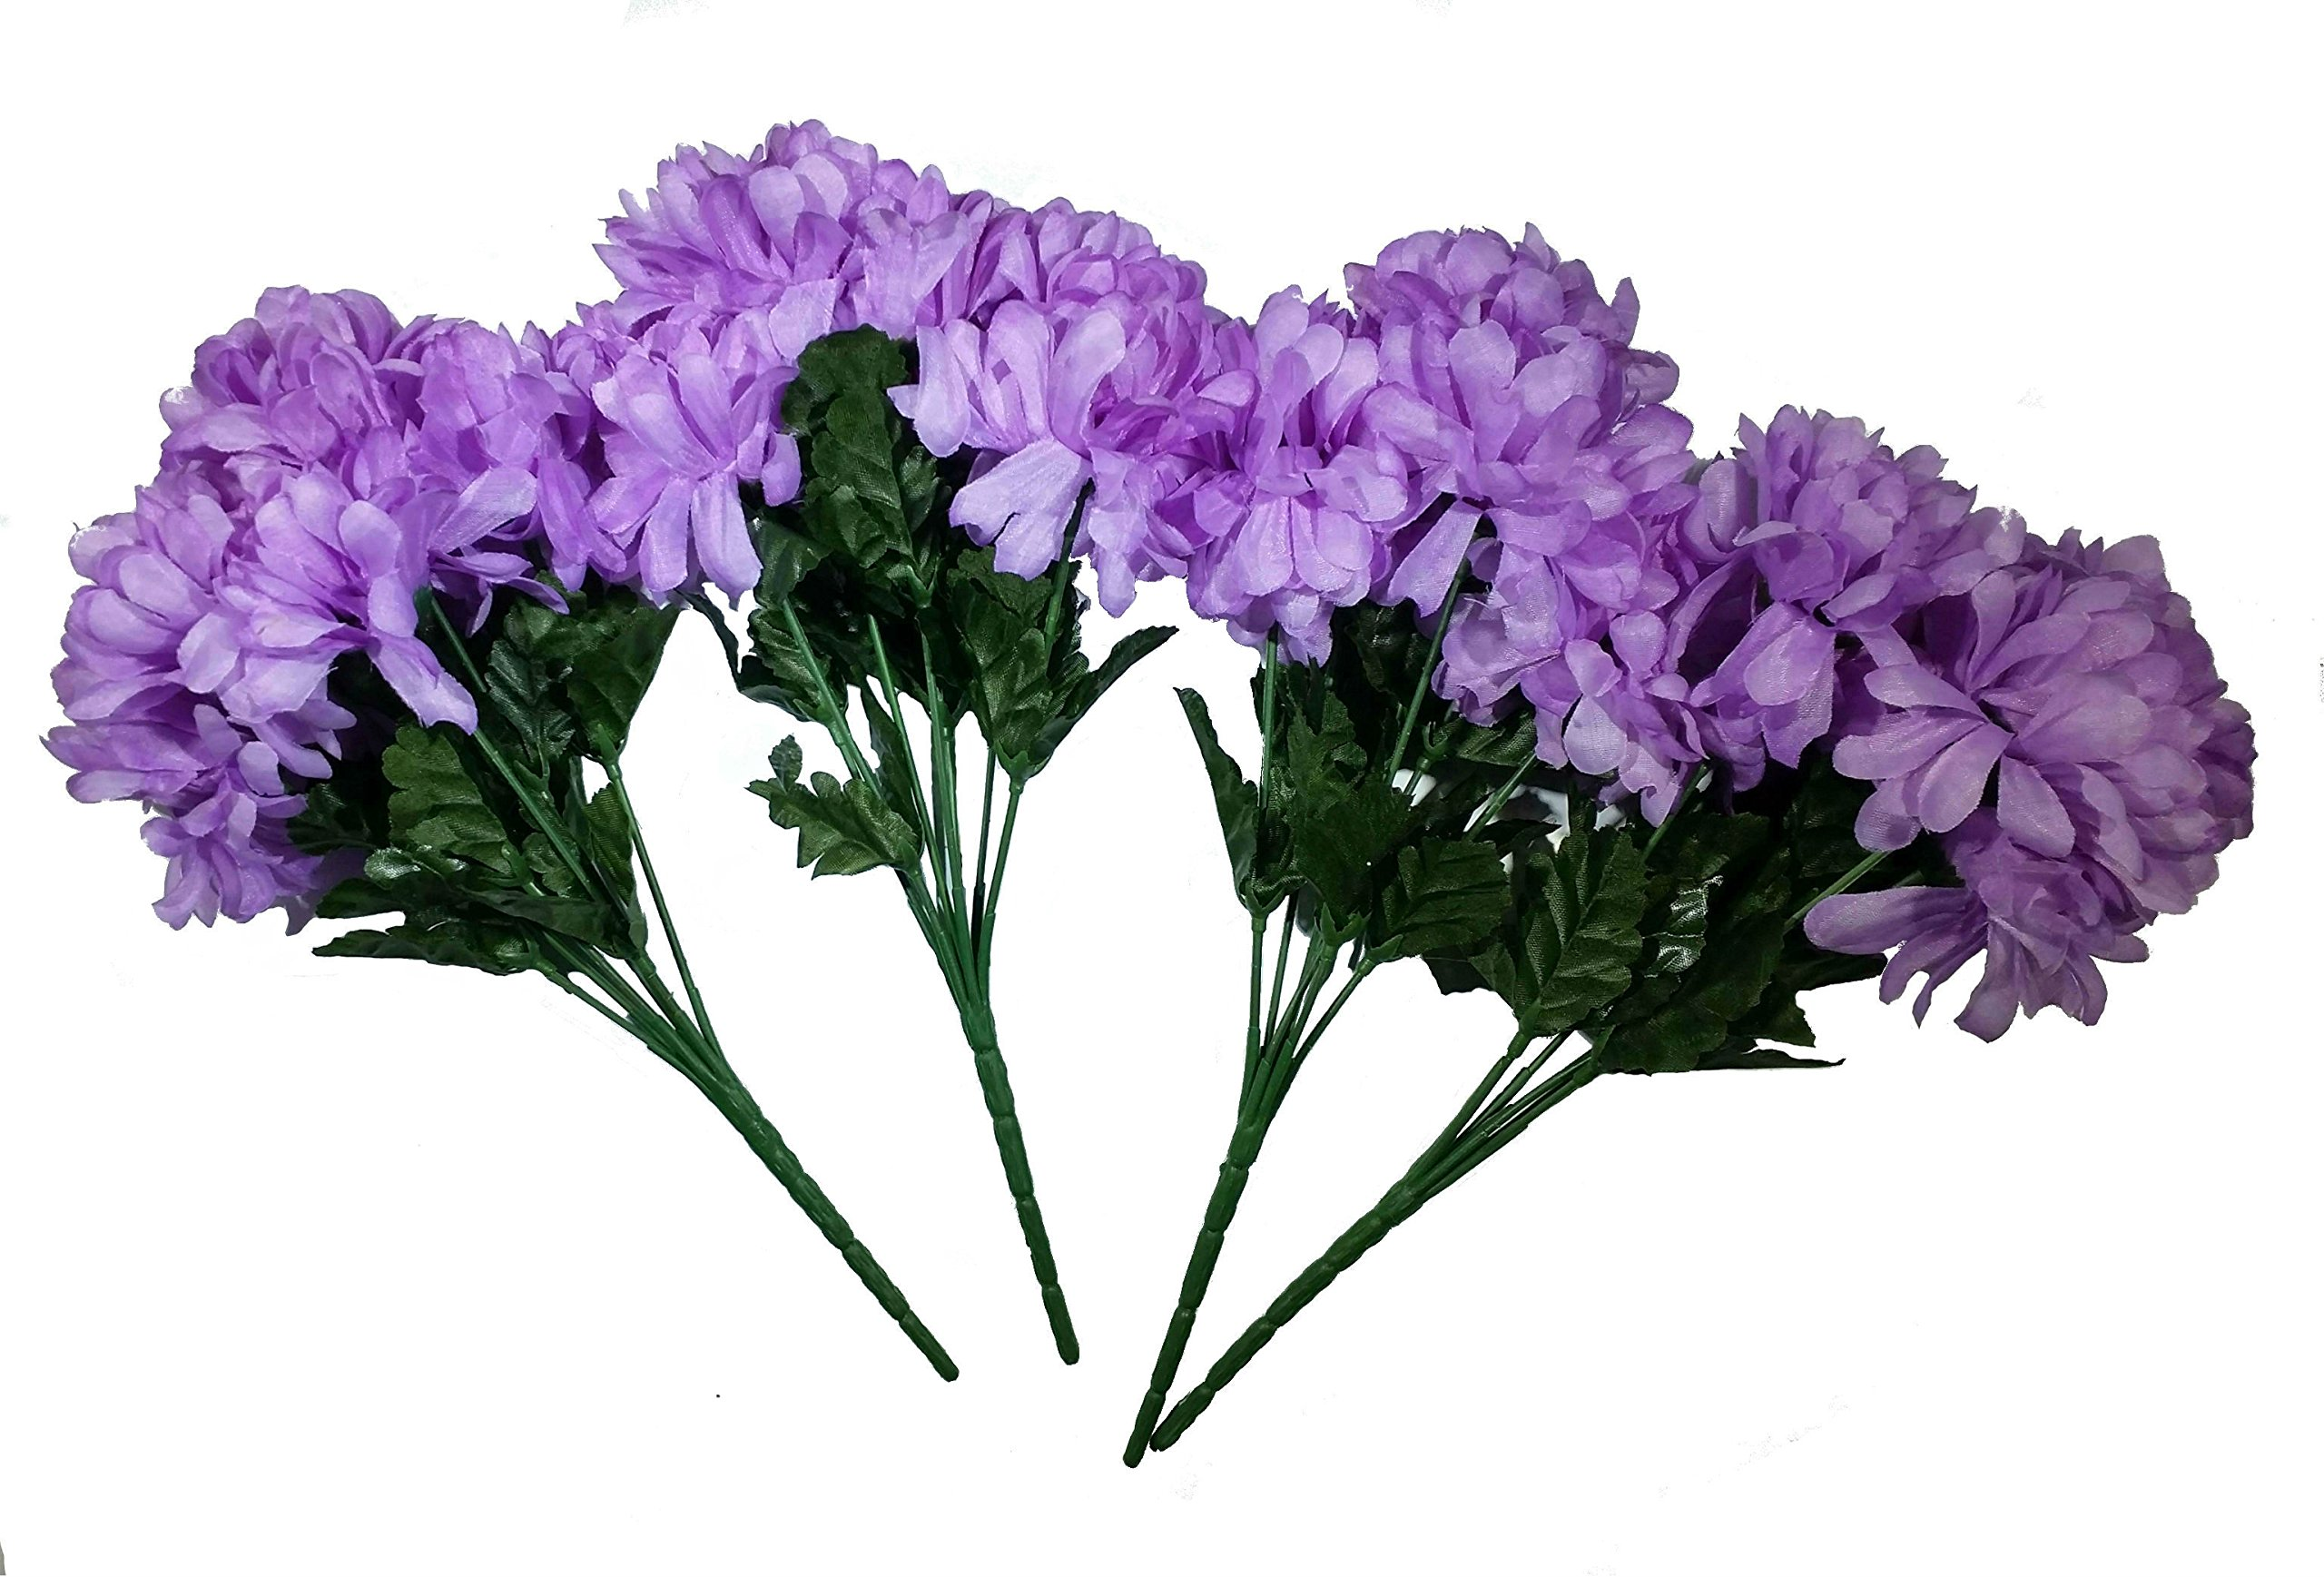 MM-TJ-Products-Artificial-Chrysanthemum-Bush-7-Stems-Pack-of-4